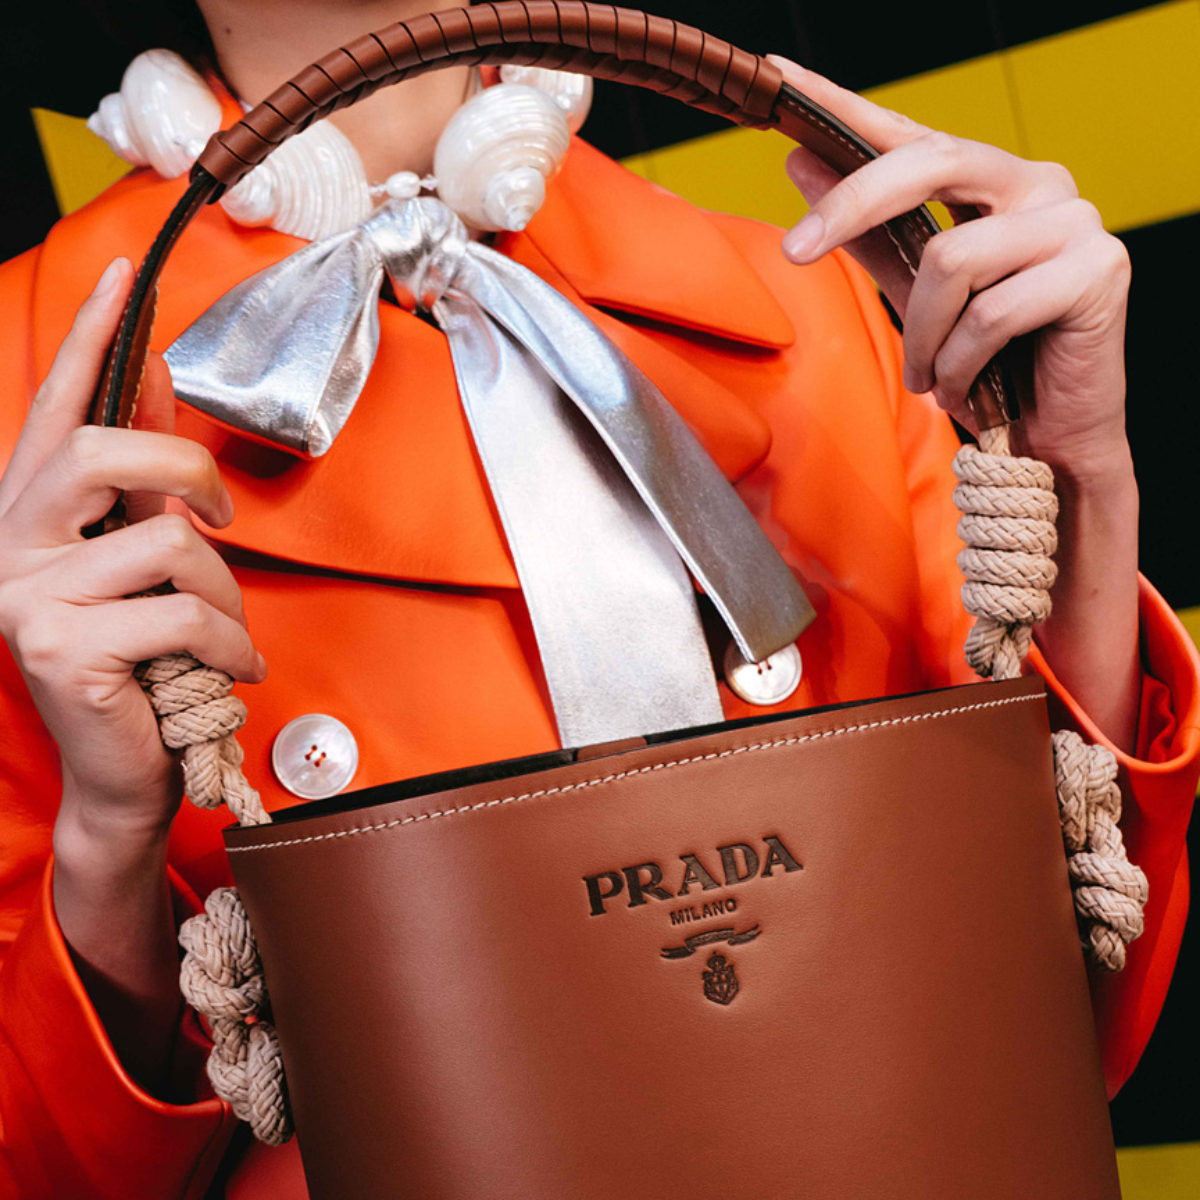 Prada is the FIRST luxury brand to sign a sustainability deal; read on